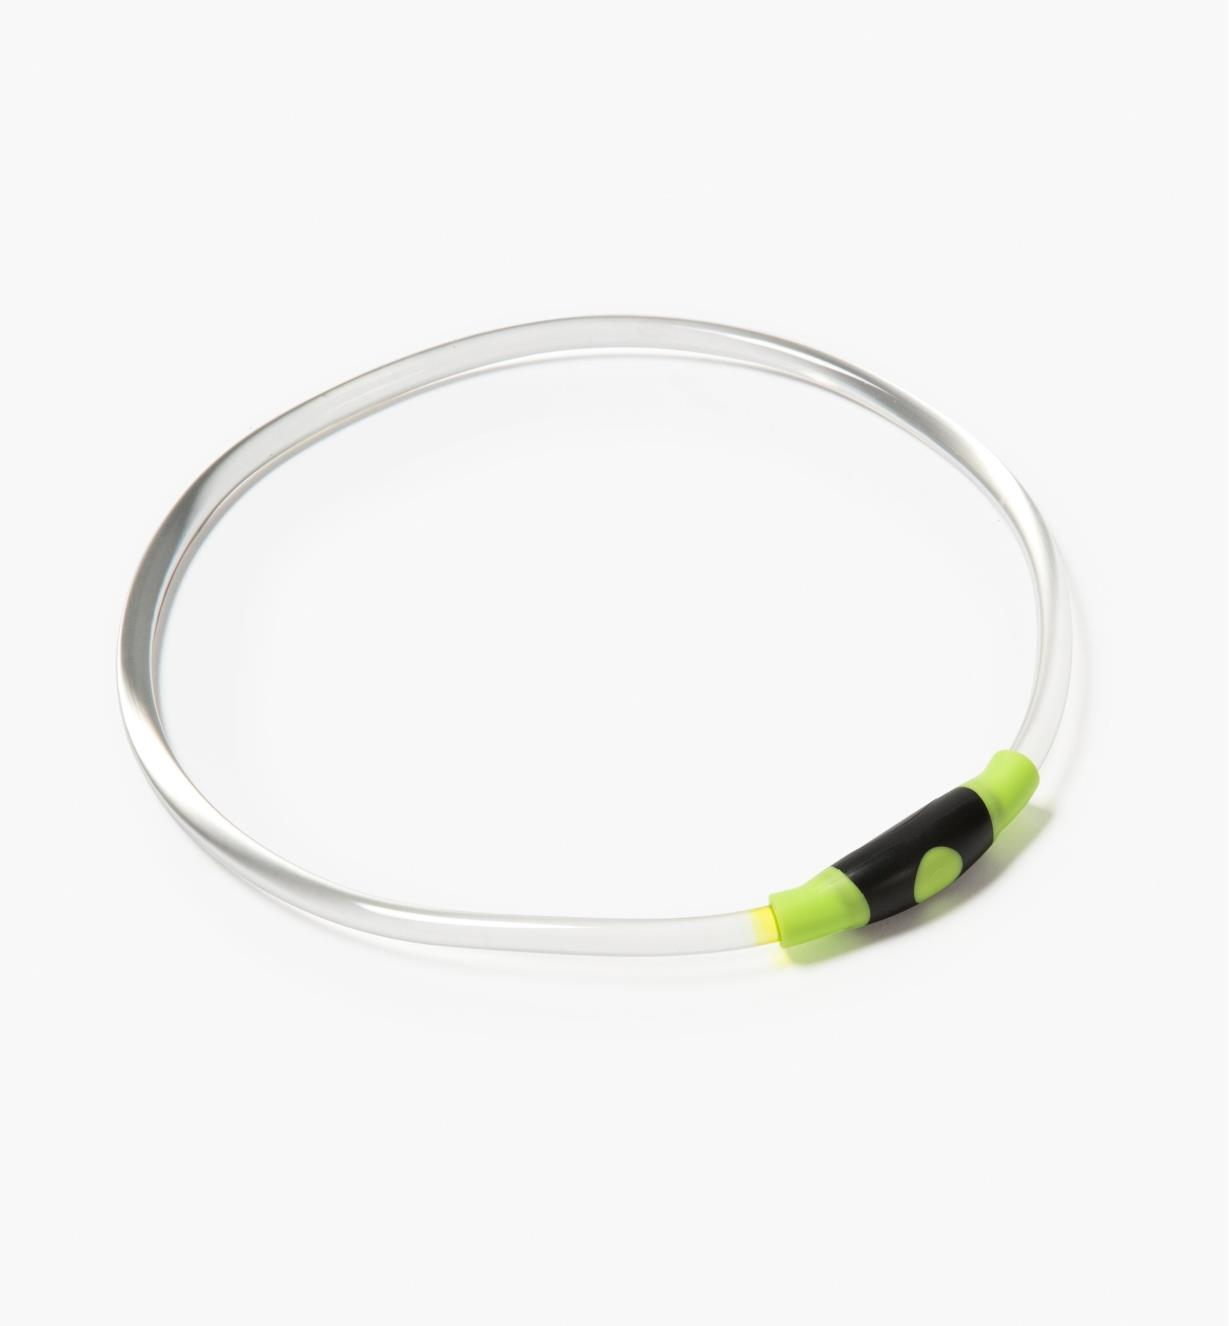 68K0896 - NiteHowl LED Pet Neckband, Green